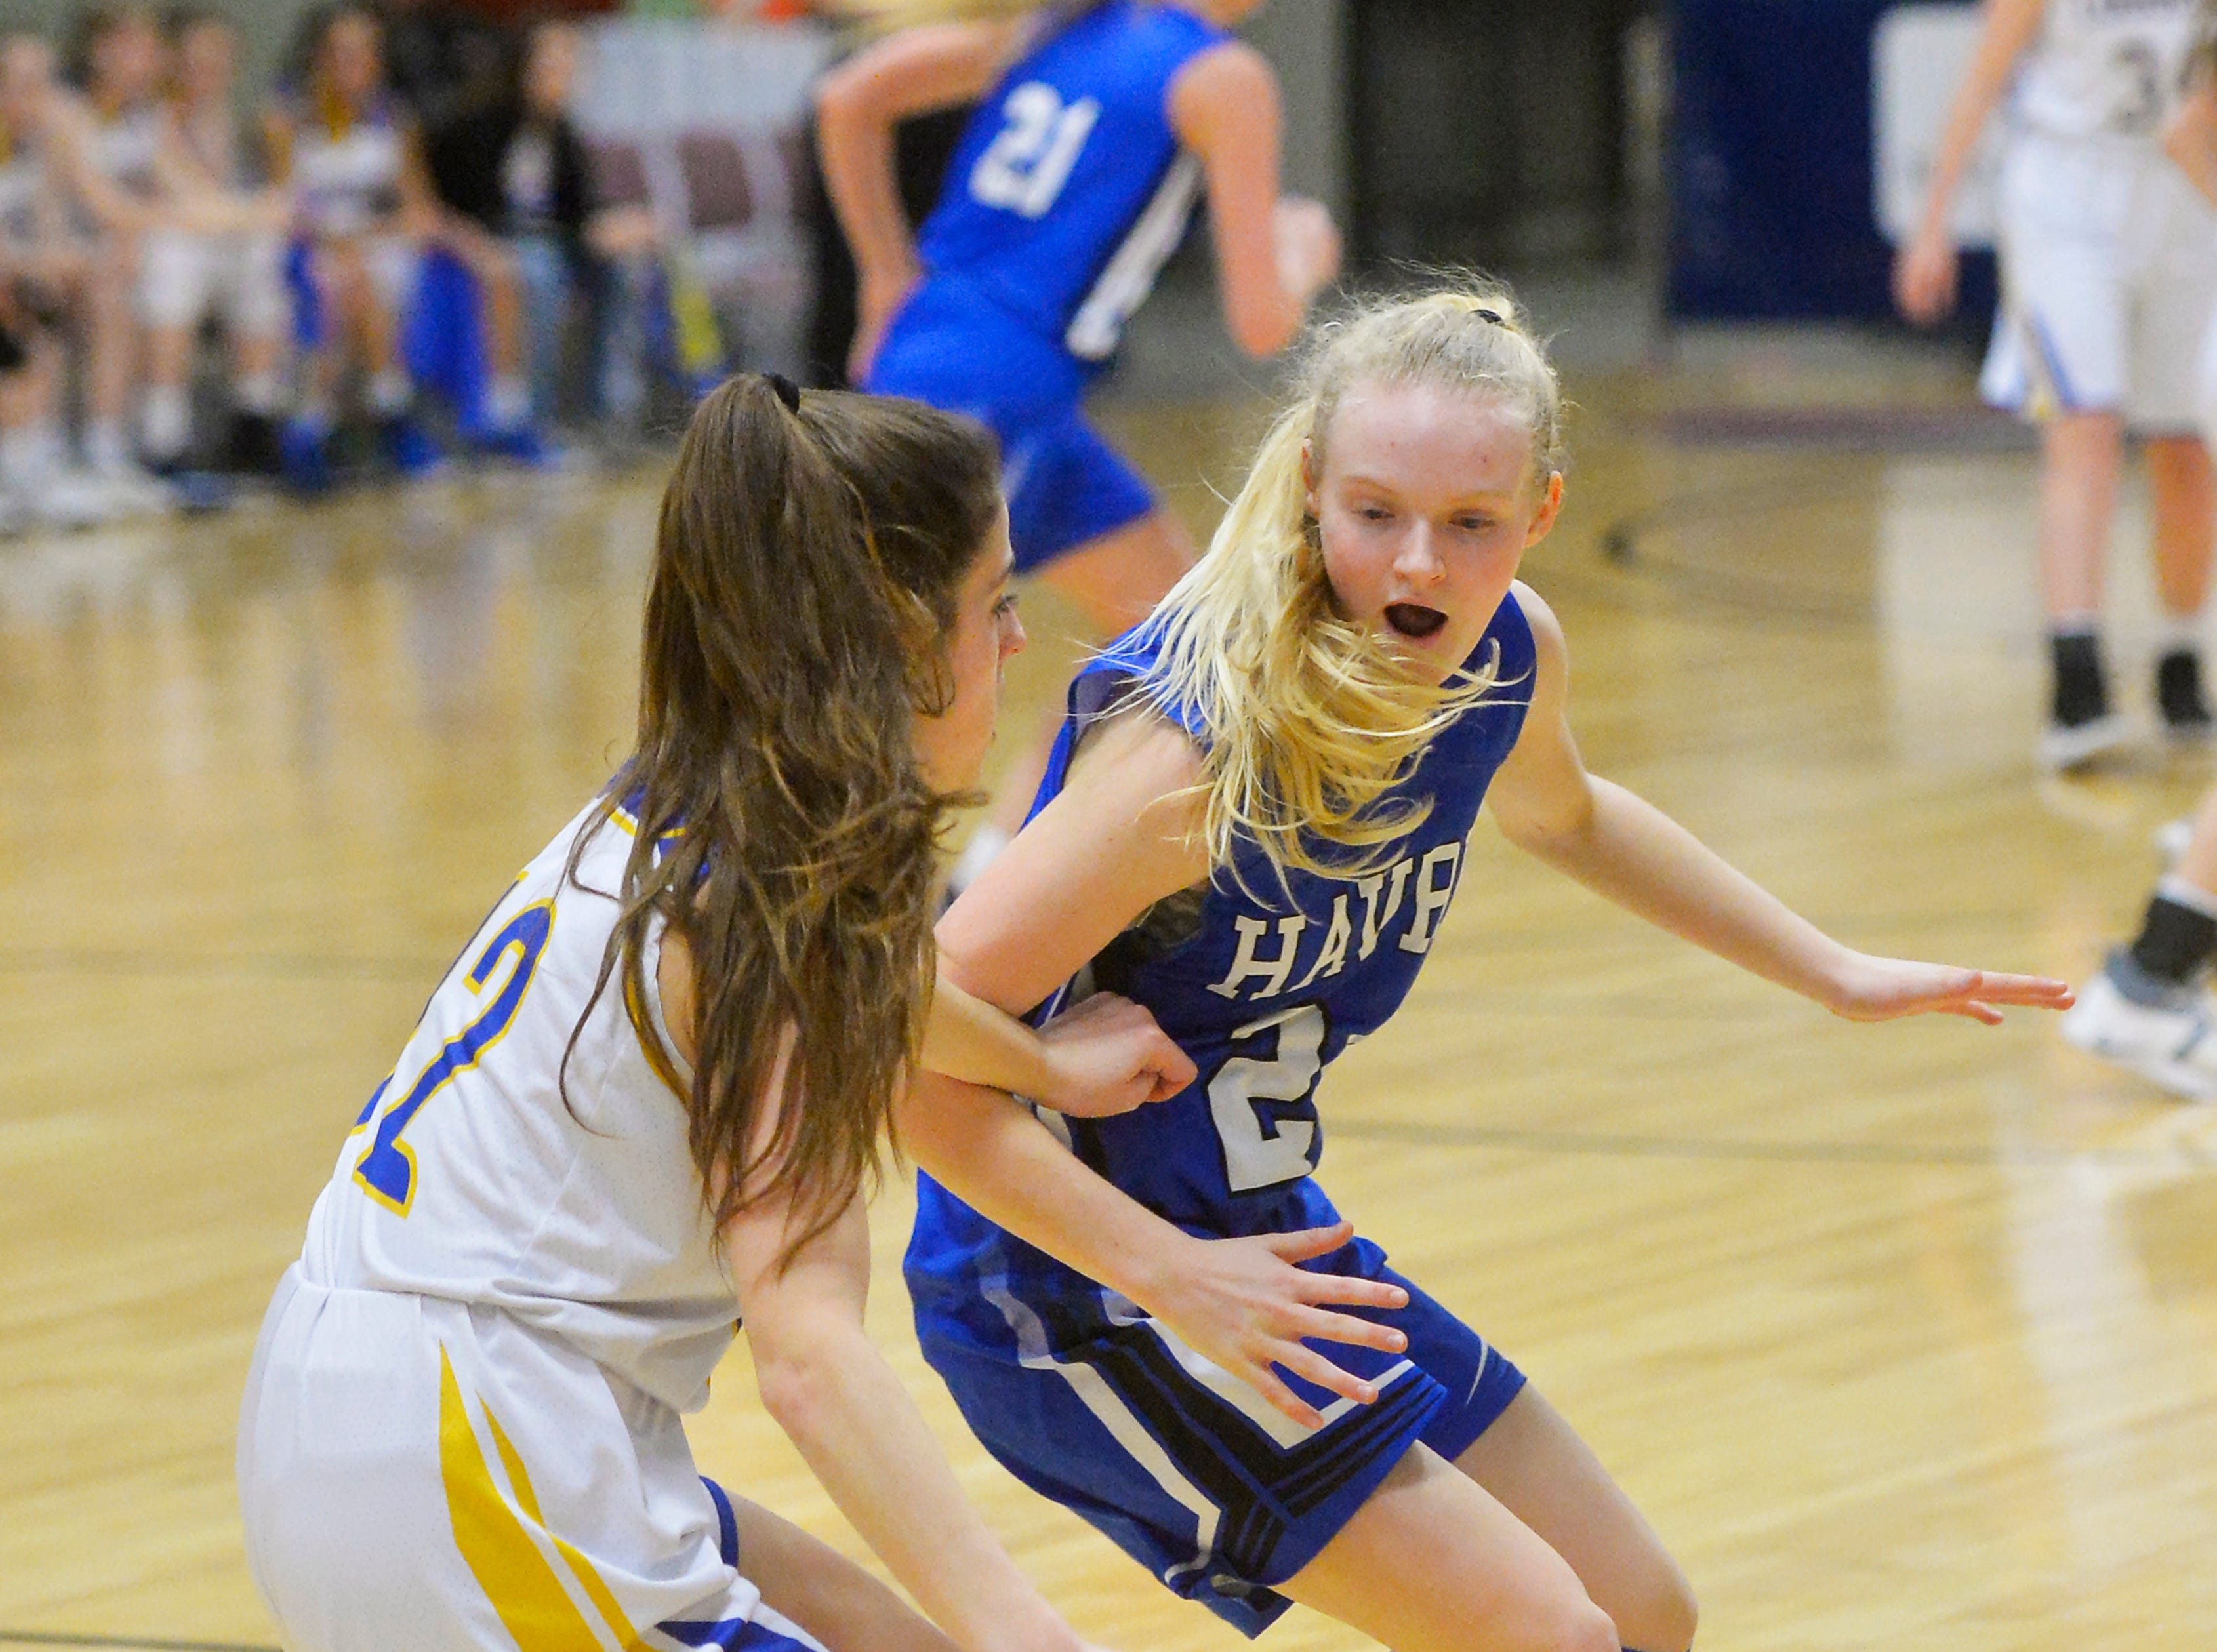 Havre and Libby play in the first round of the Class A Girls Basketball Tournament on Thursday in the Four Seasons Arena.